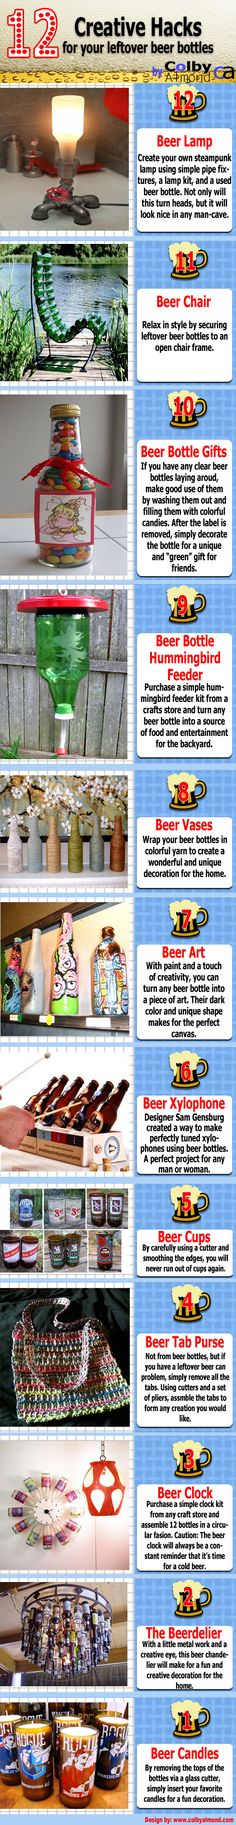 12 creative DIY projects for beer or other bottles. In my case, it would be other. :) Cute ideas for old fashioned or new root beer or cola bottles.